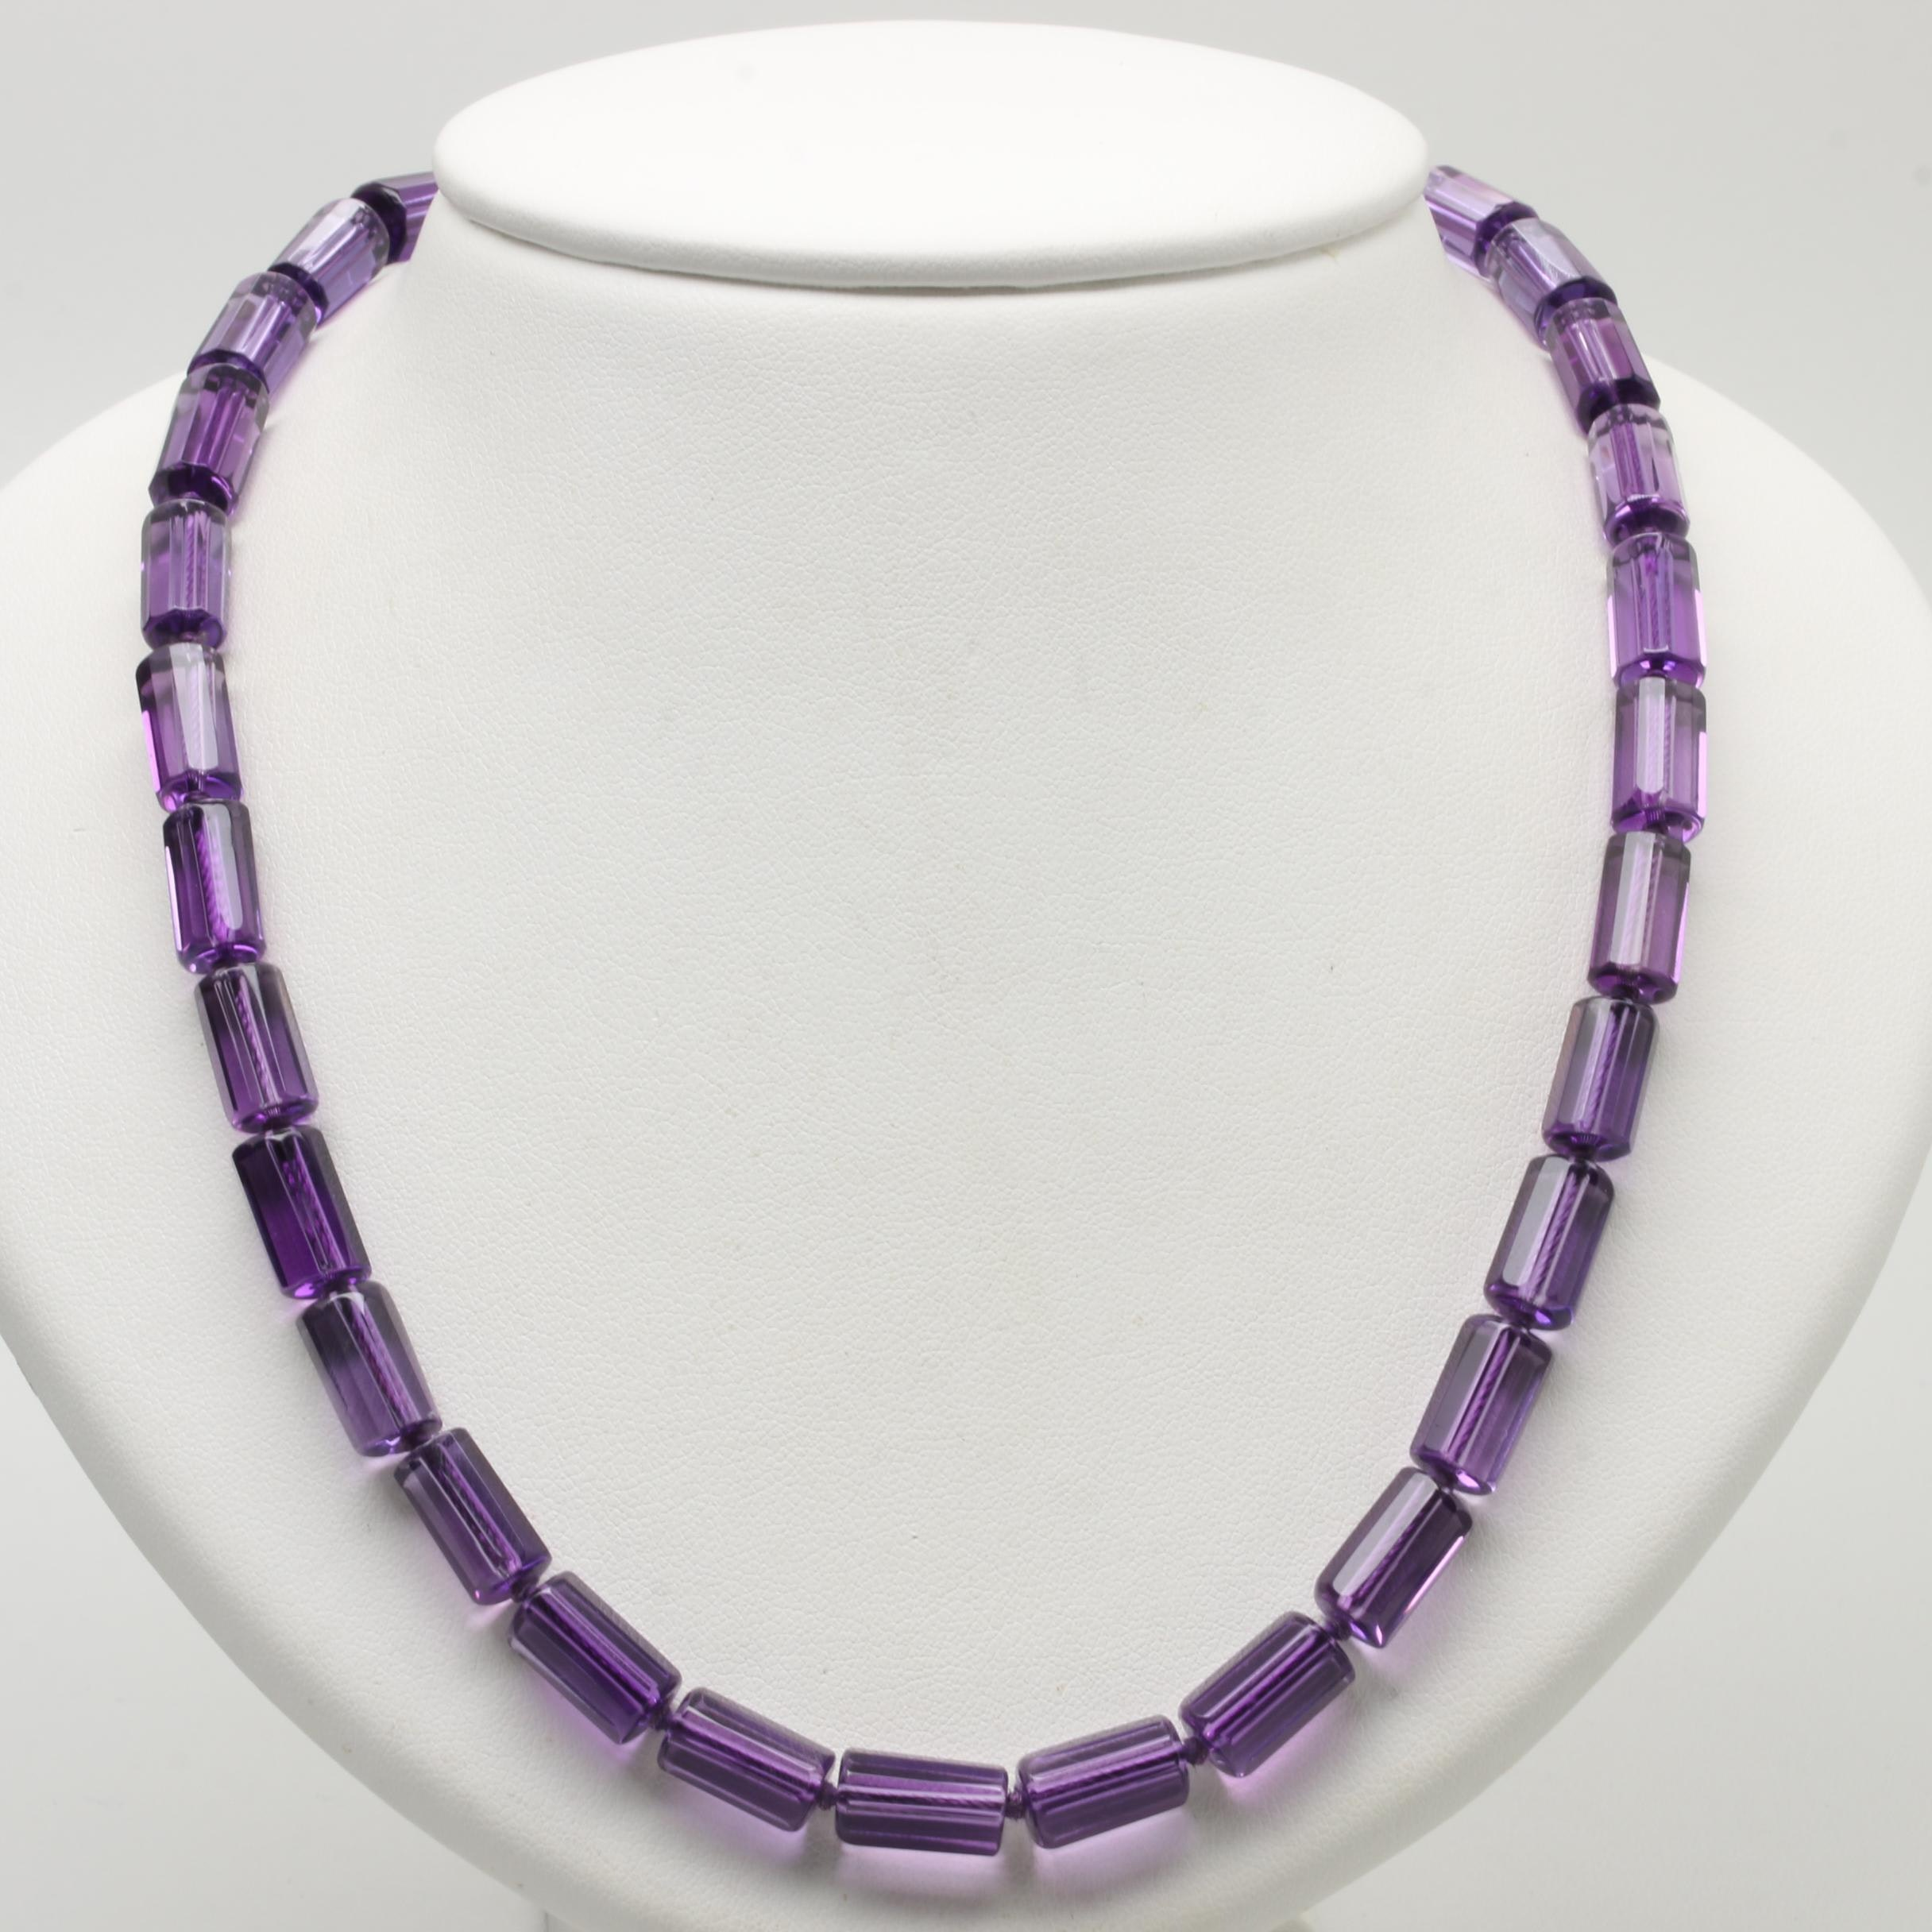 14K Yellow Gold Amethyst Bead Necklace